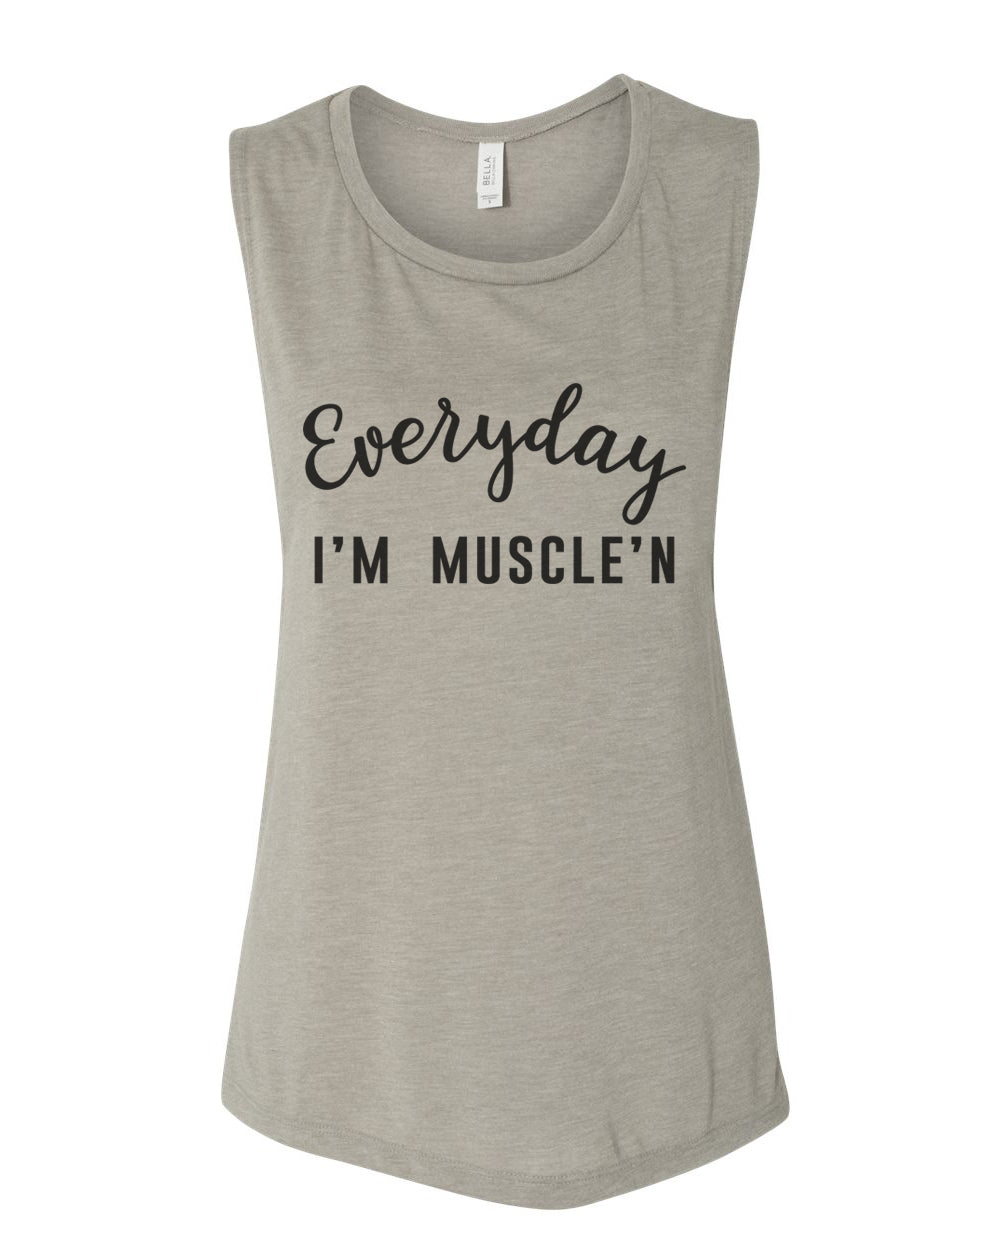 Everyday I'm Muscle'n Workout Flowy Scoop Muscle Tank